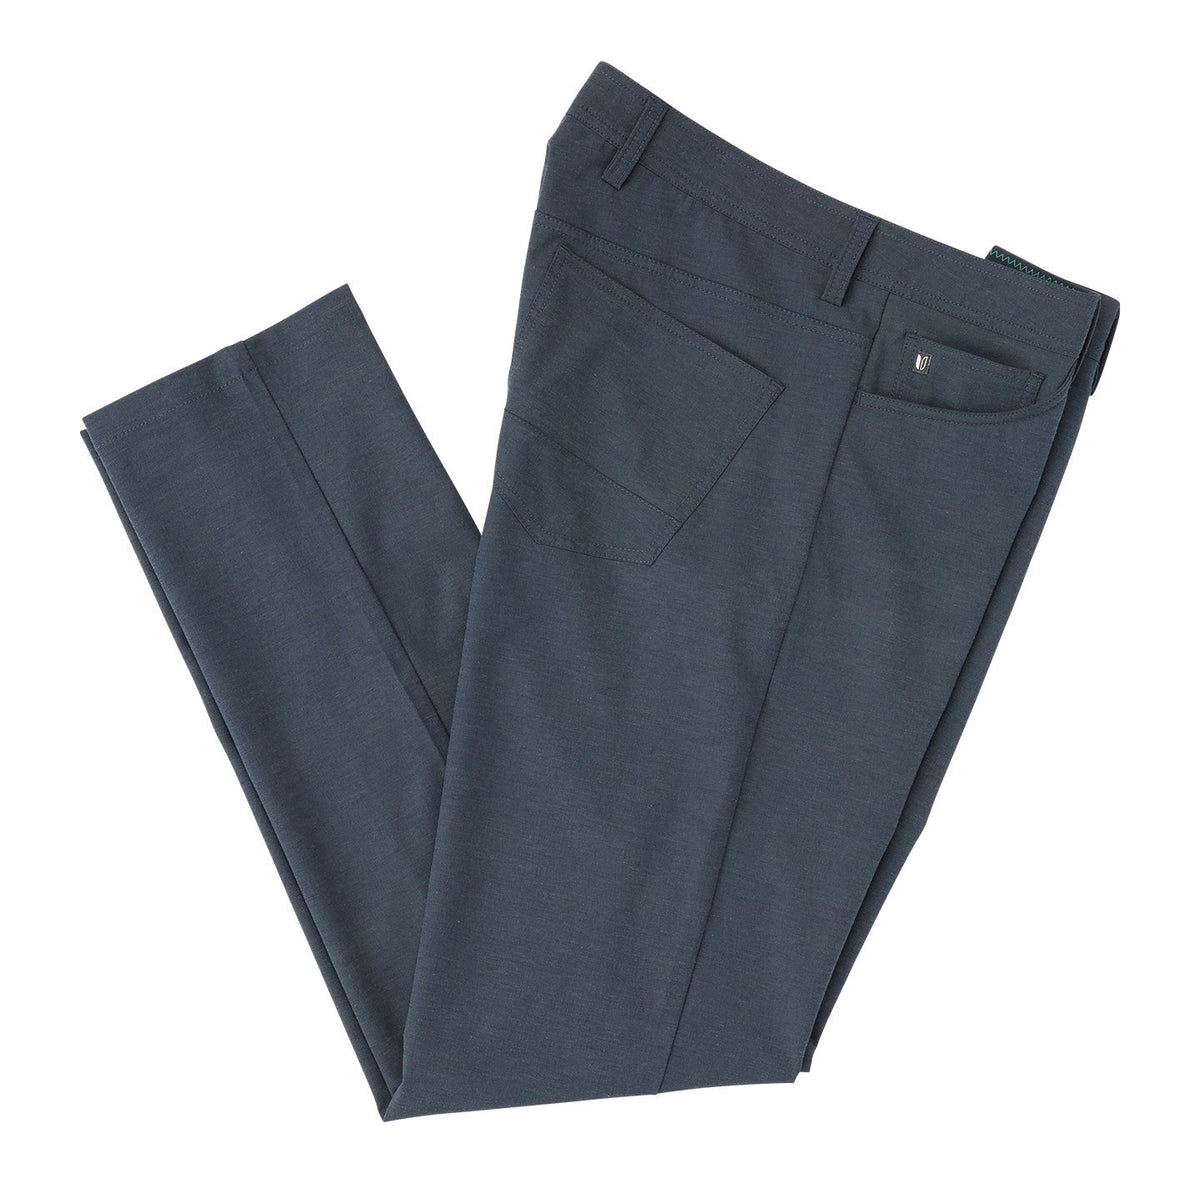 5-Pocket Boardwalker Pant